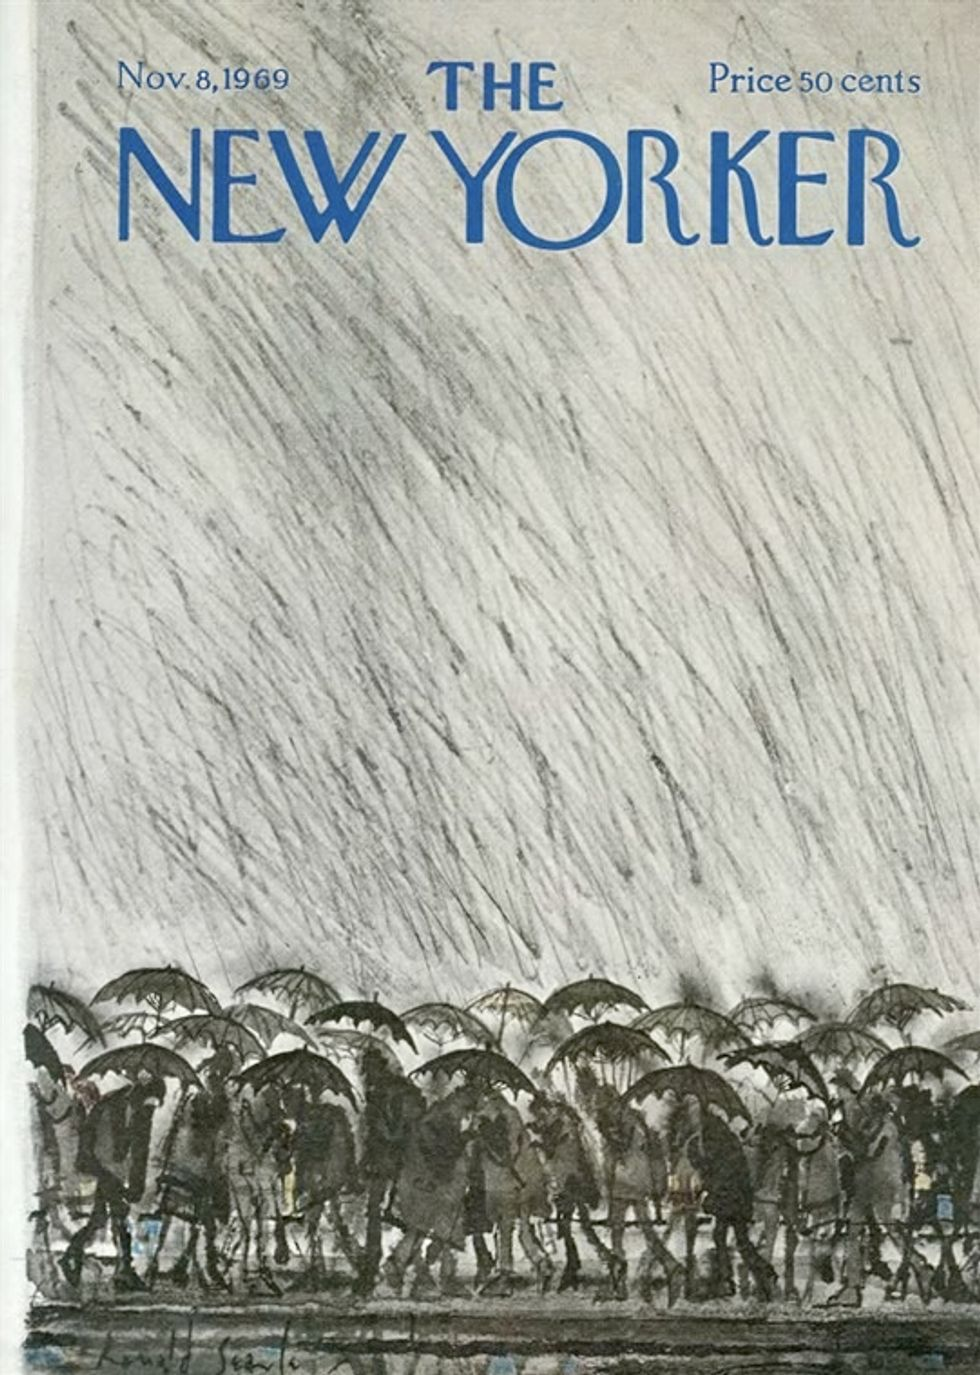 A Hurricane Sandy Service Announcement From Your Friends at Papermag